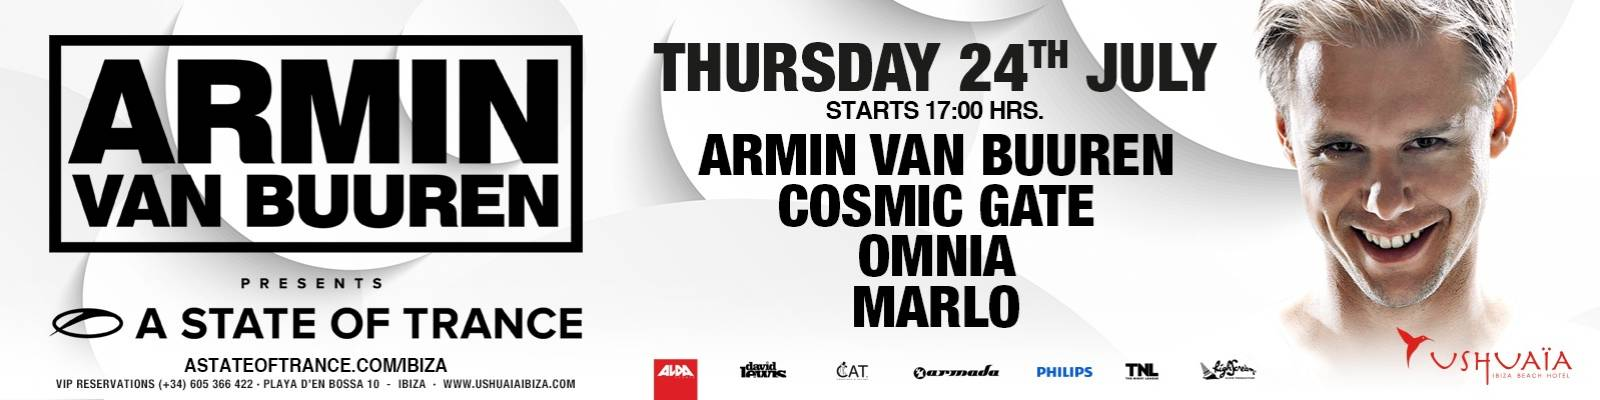 Timetable: ASOT Ushuaia Residency July 24th